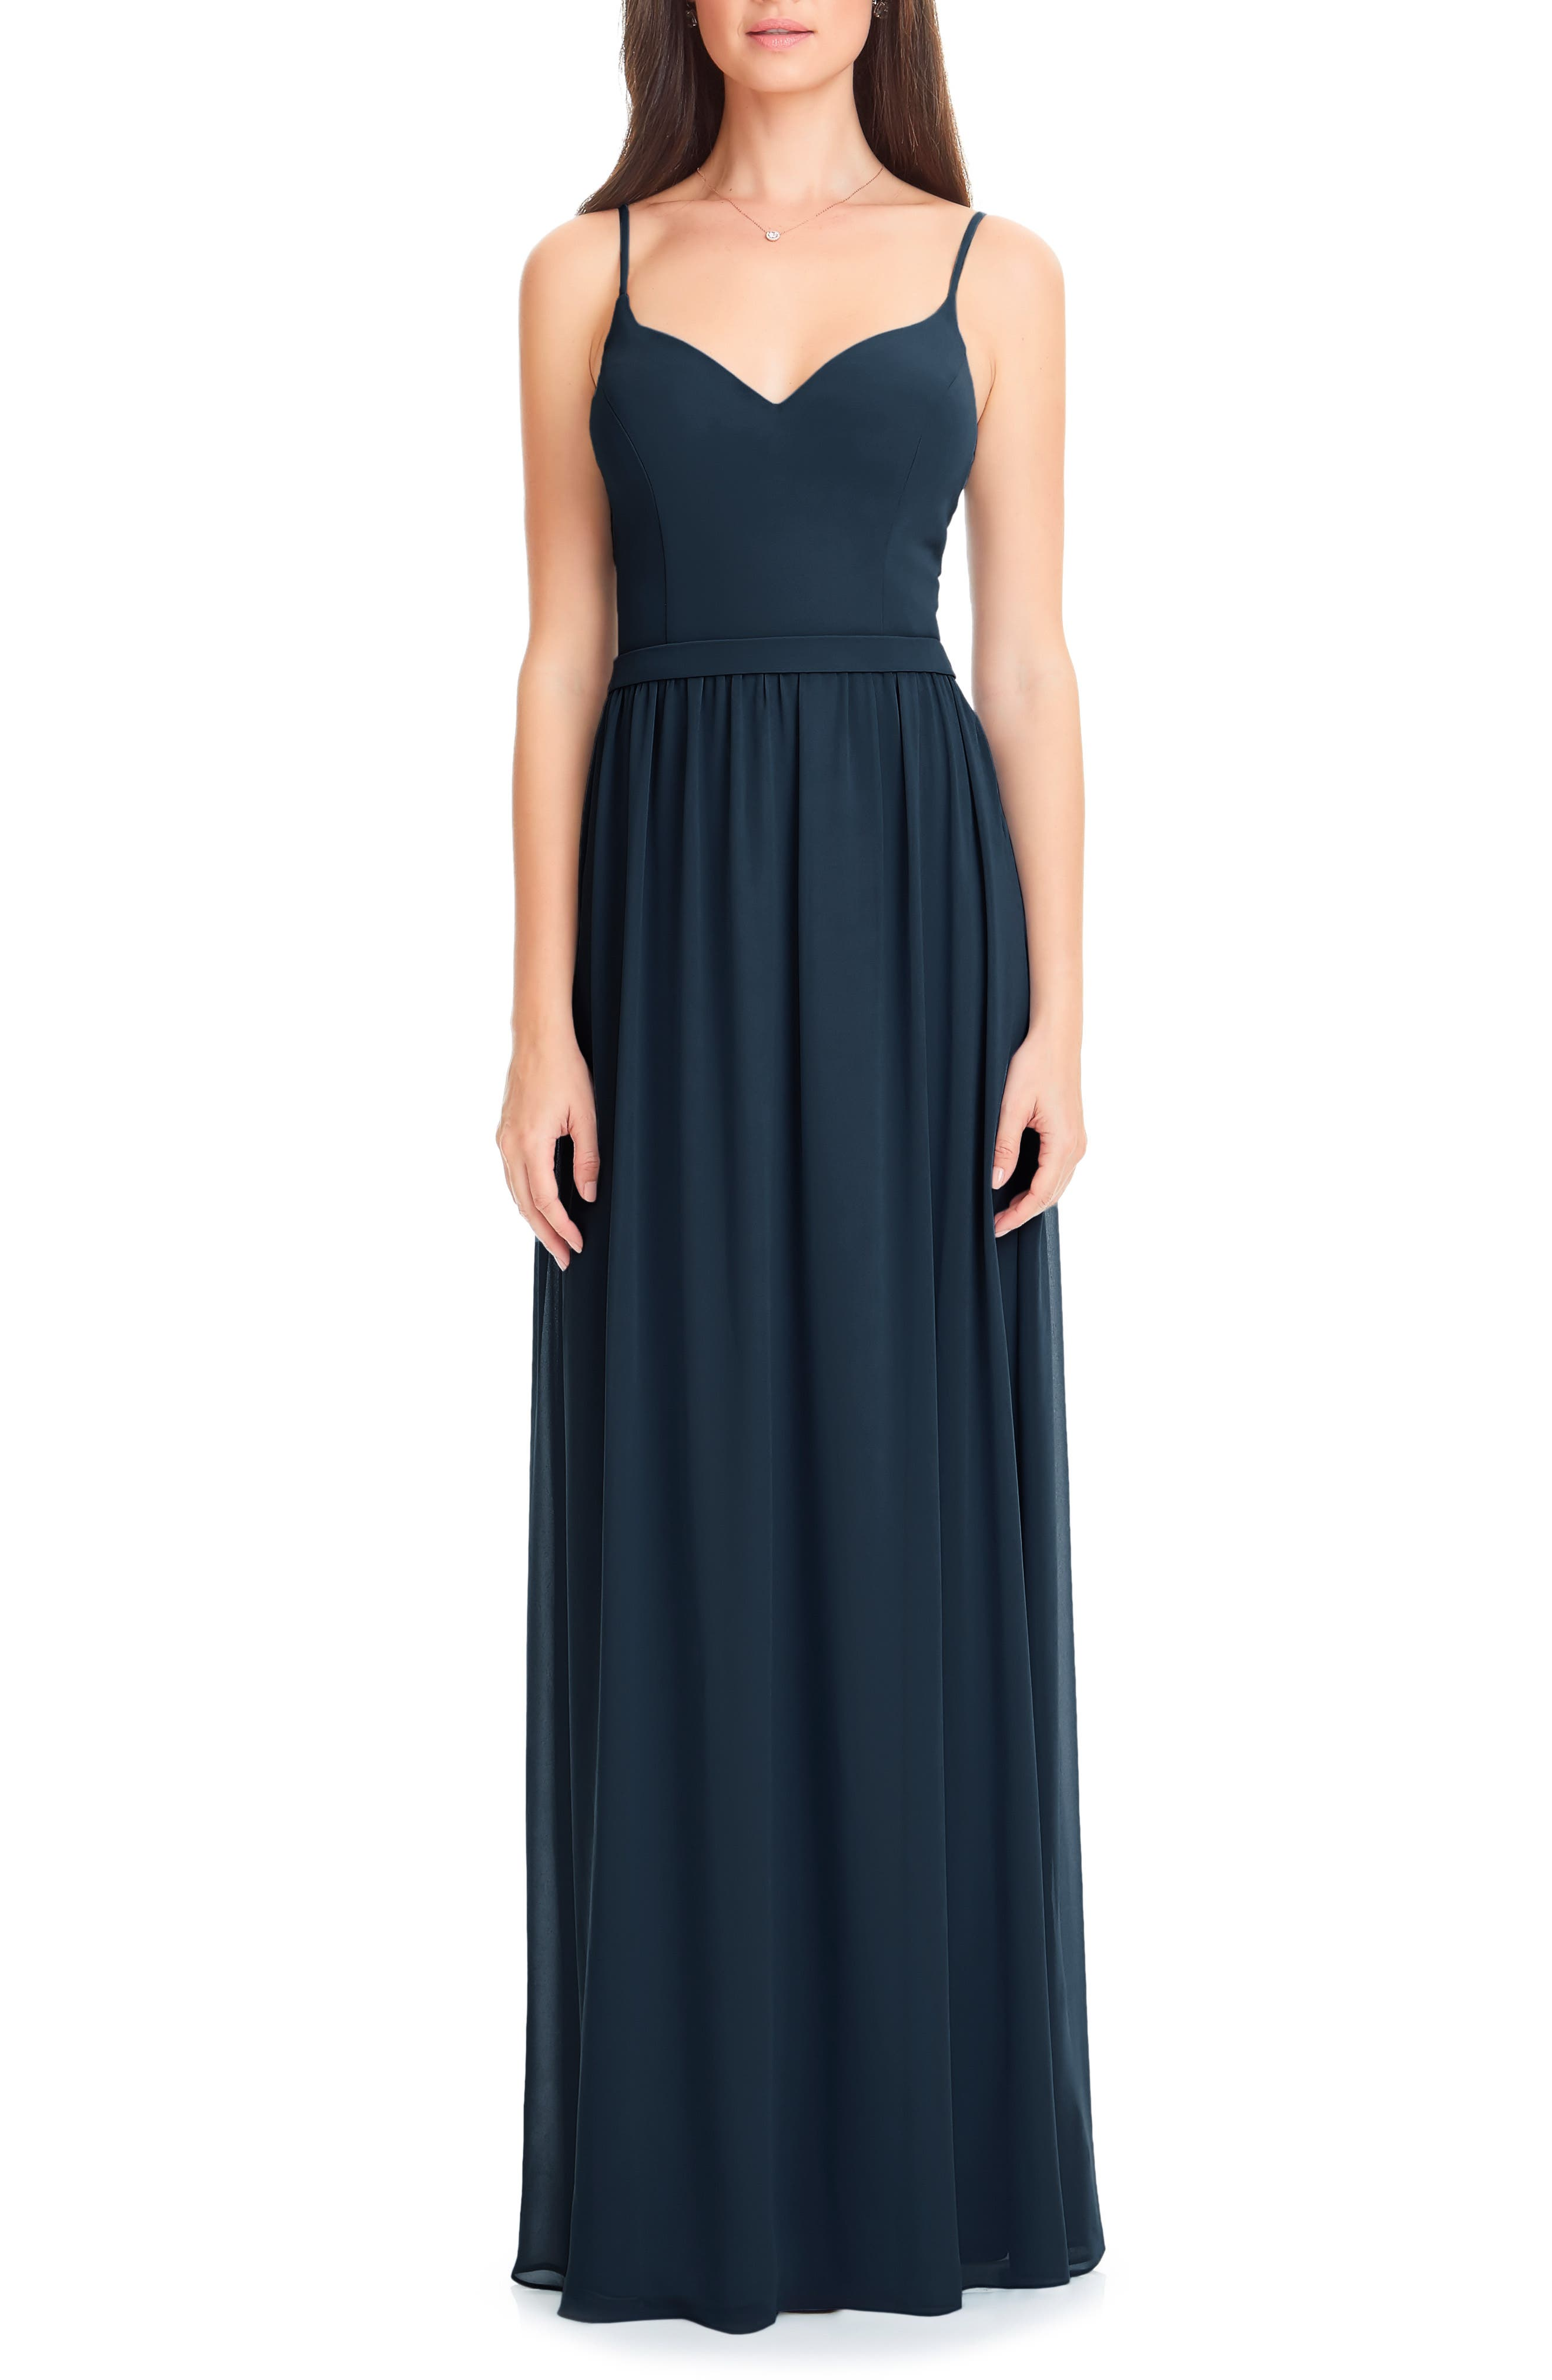 #LEVKOFF, Levkoff Chiffon Gown, Main thumbnail 1, color, NAVY